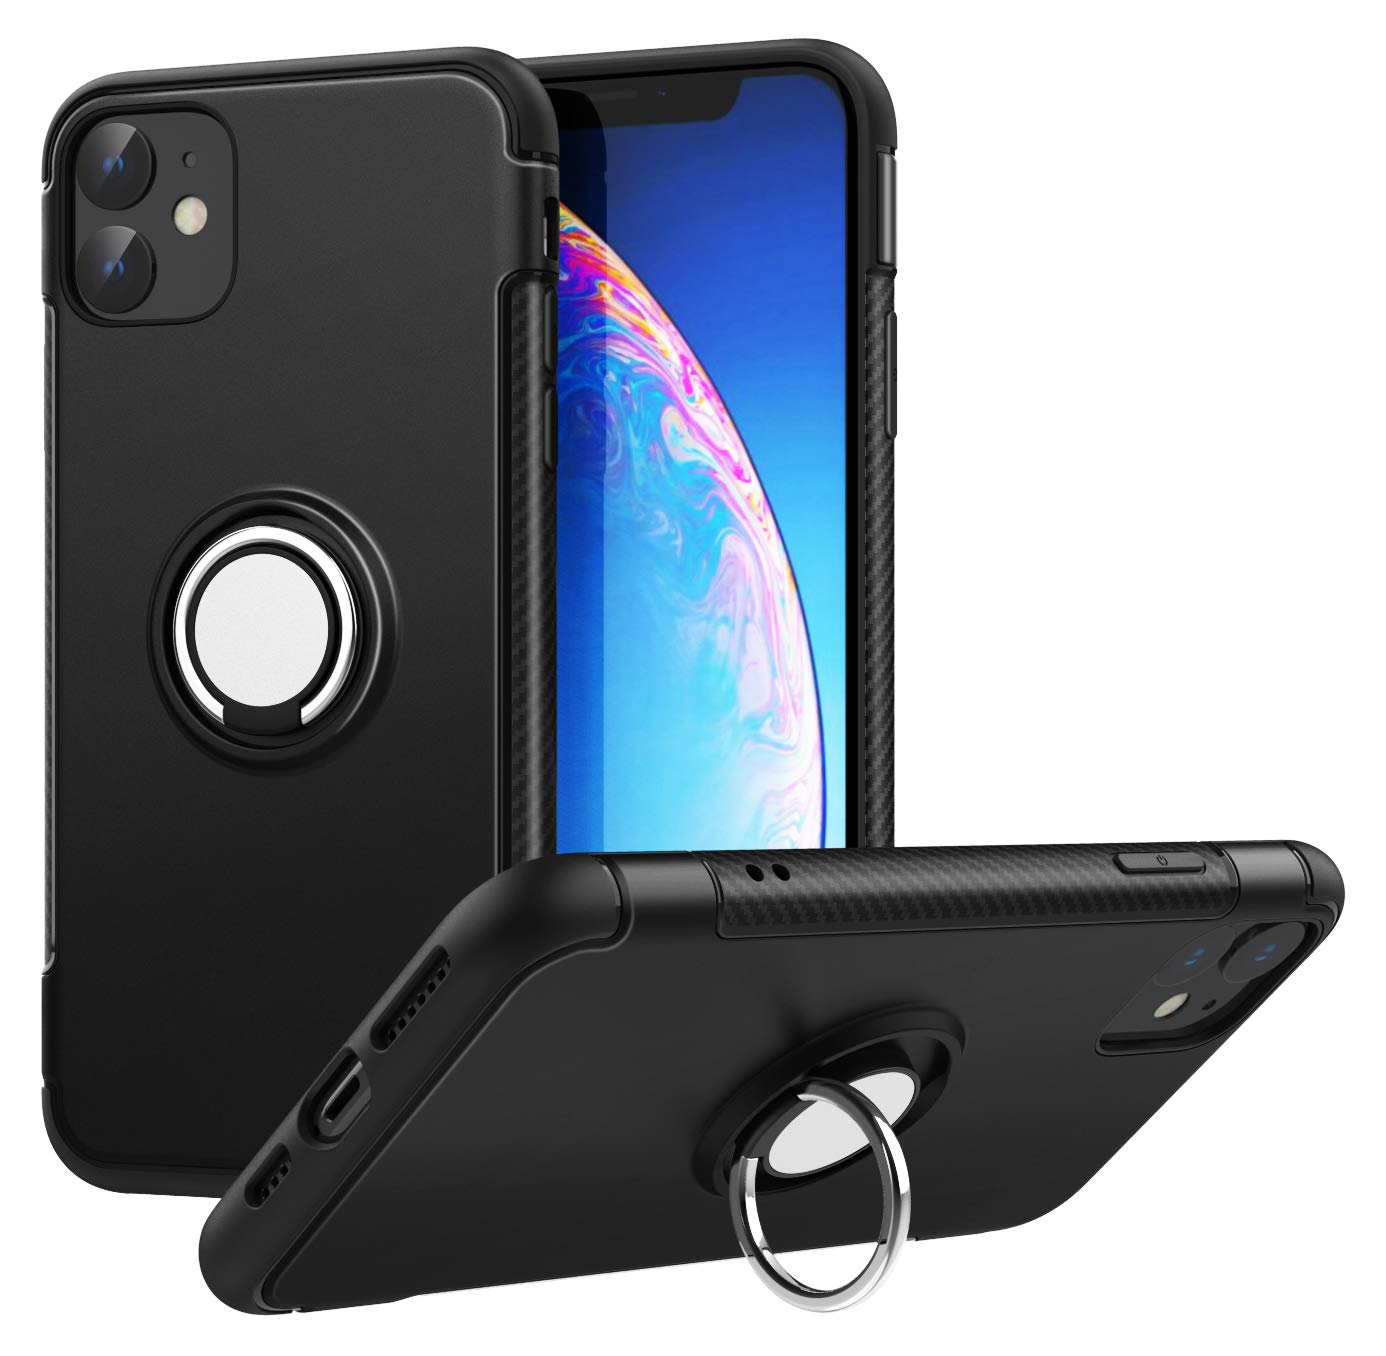 Funda Iphone 11 Con Pie MOKO [7VYGD2LL]